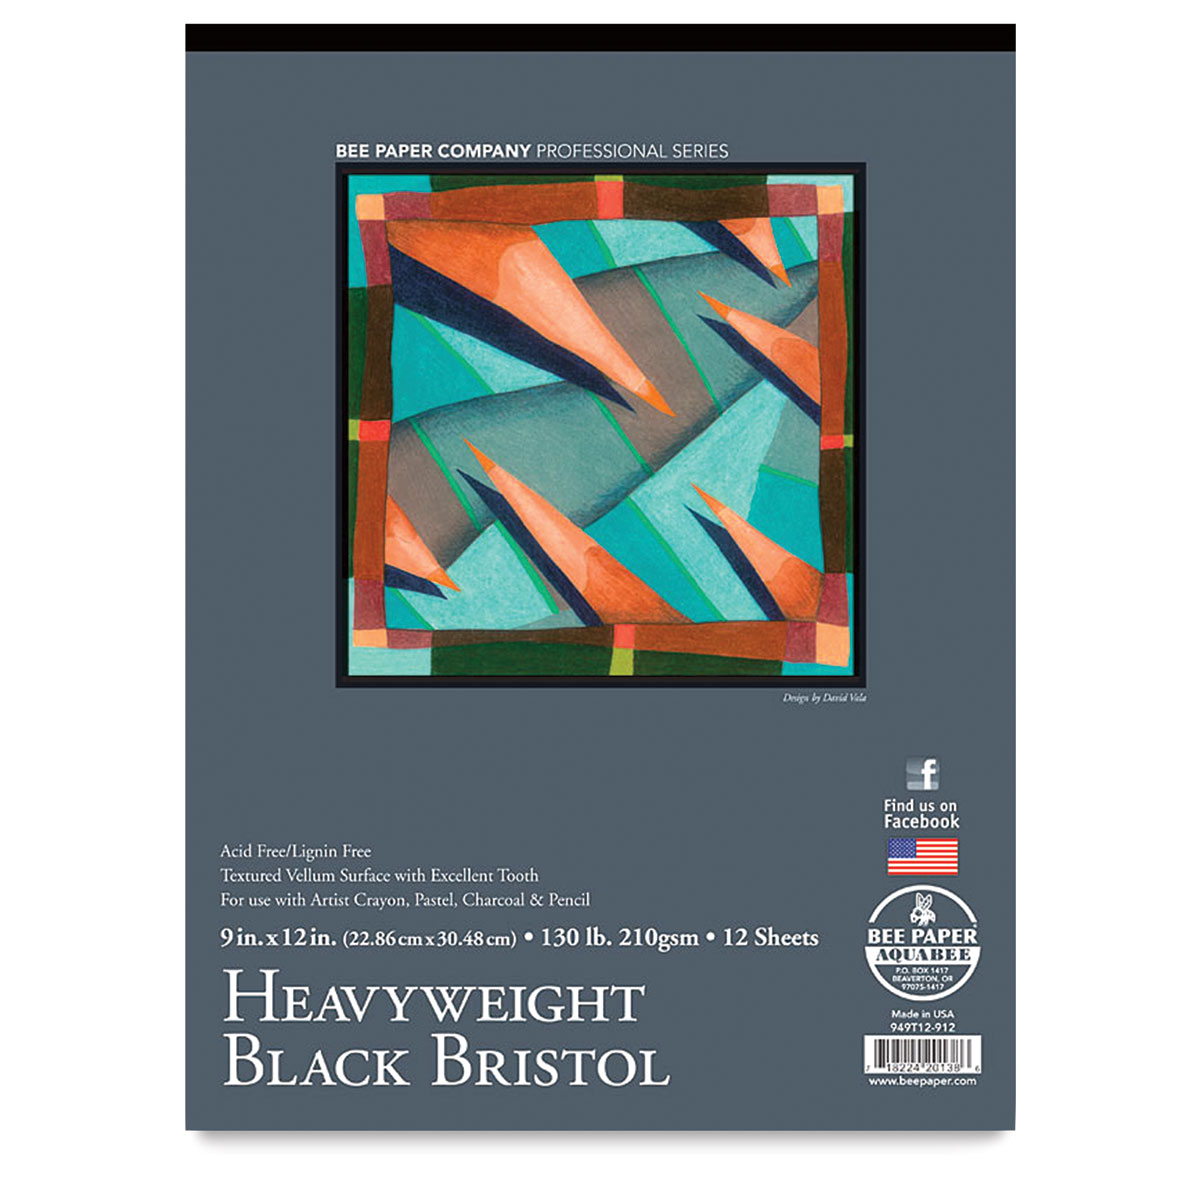 14-Inch by 17-Inch Bee Paper 2-Ply Plate Bristol Pad